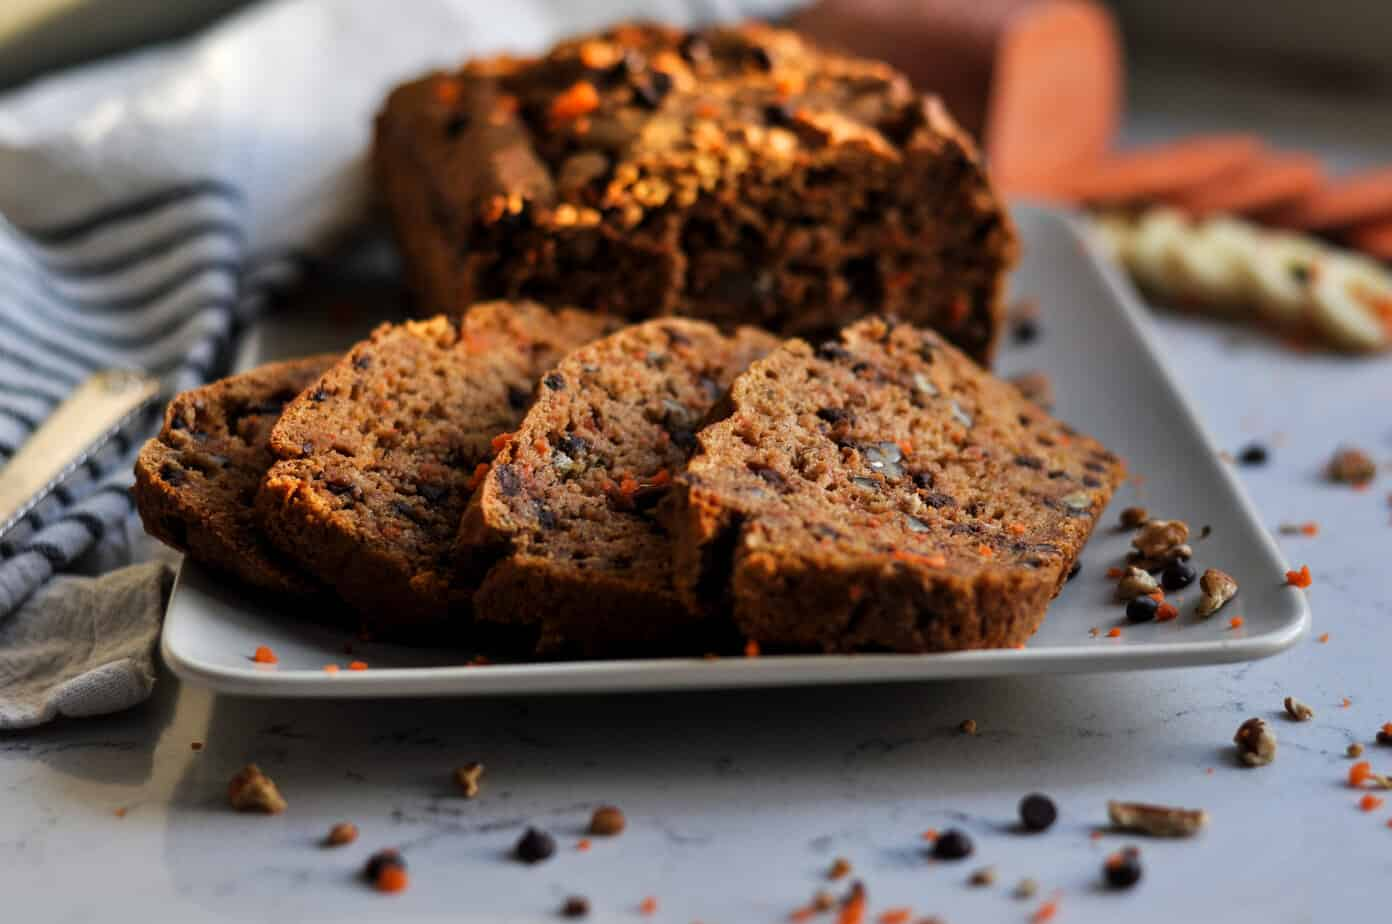 Chocolate chip carrot bread looking extra inviting and healthy with veggies blurred in the background.